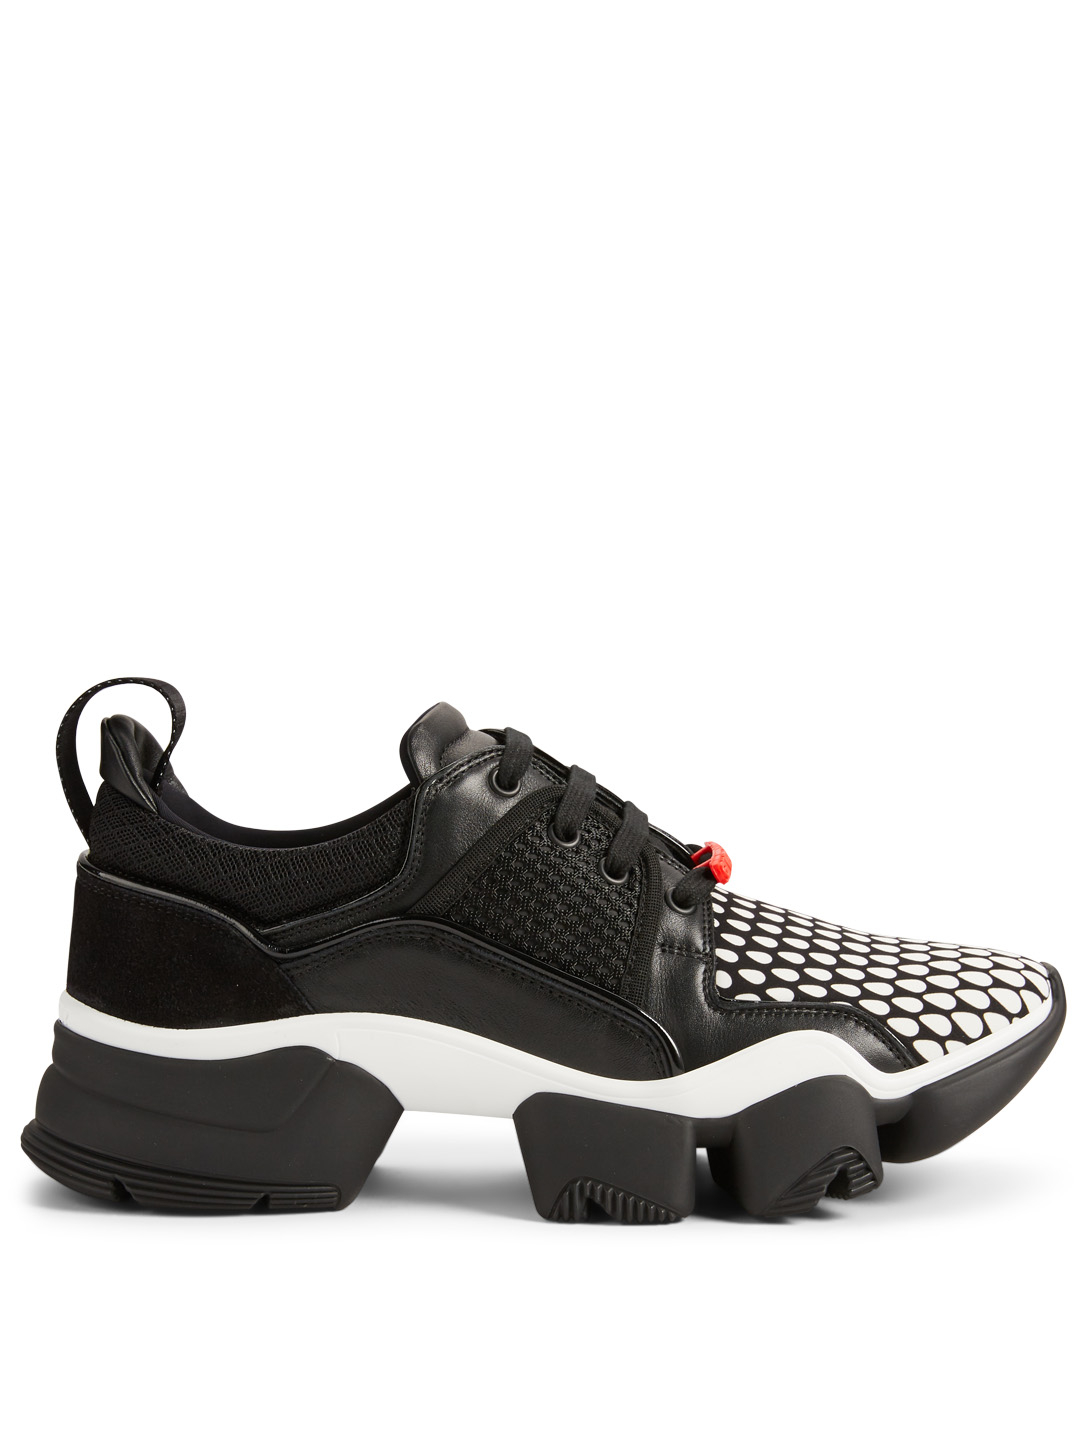 GIVENCHY Jaw Leather And Neoprene Sneakers Men's Black